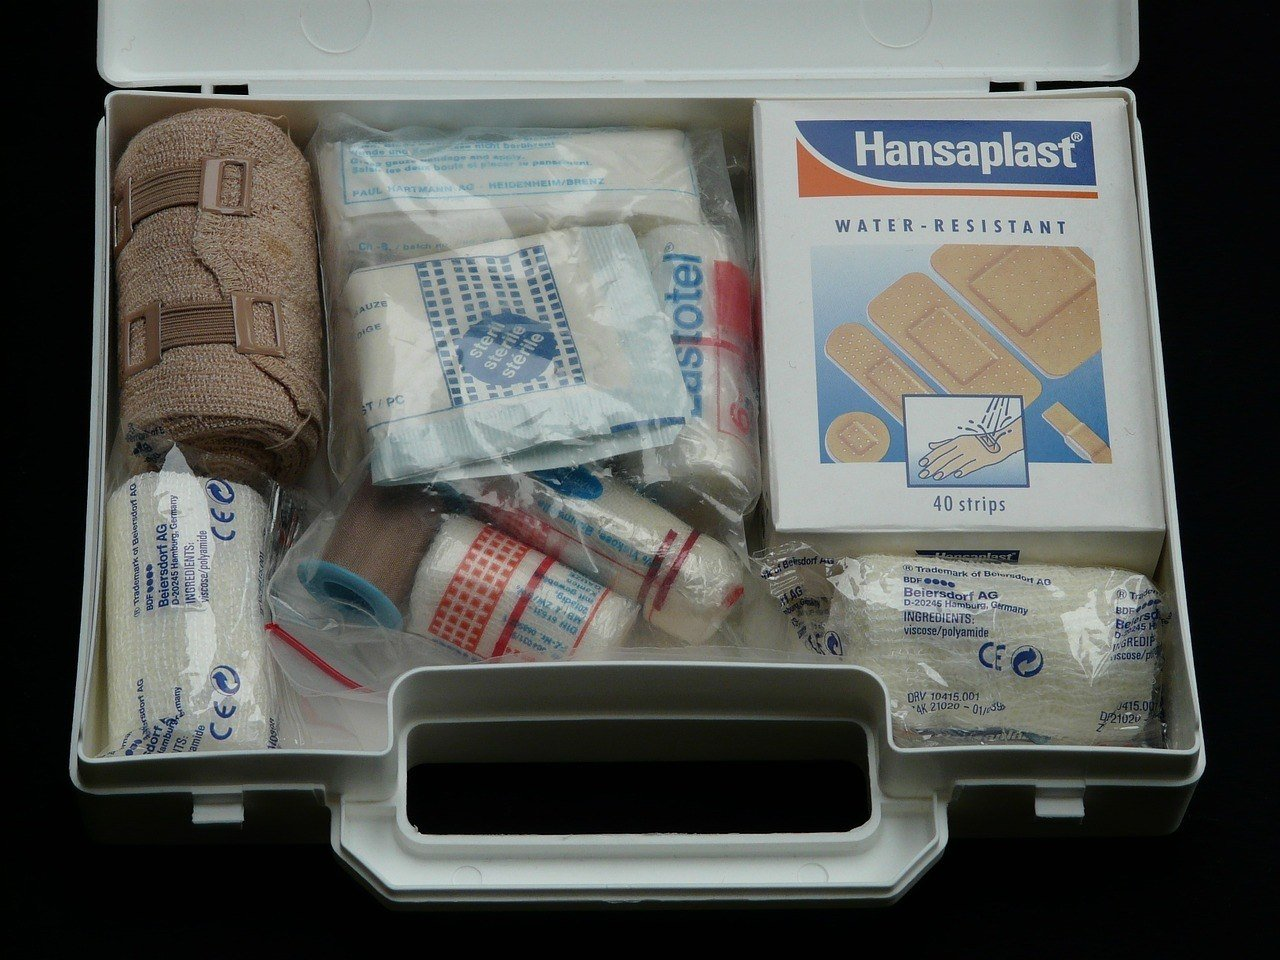 Bandages are a necessary thing for any first aid kit